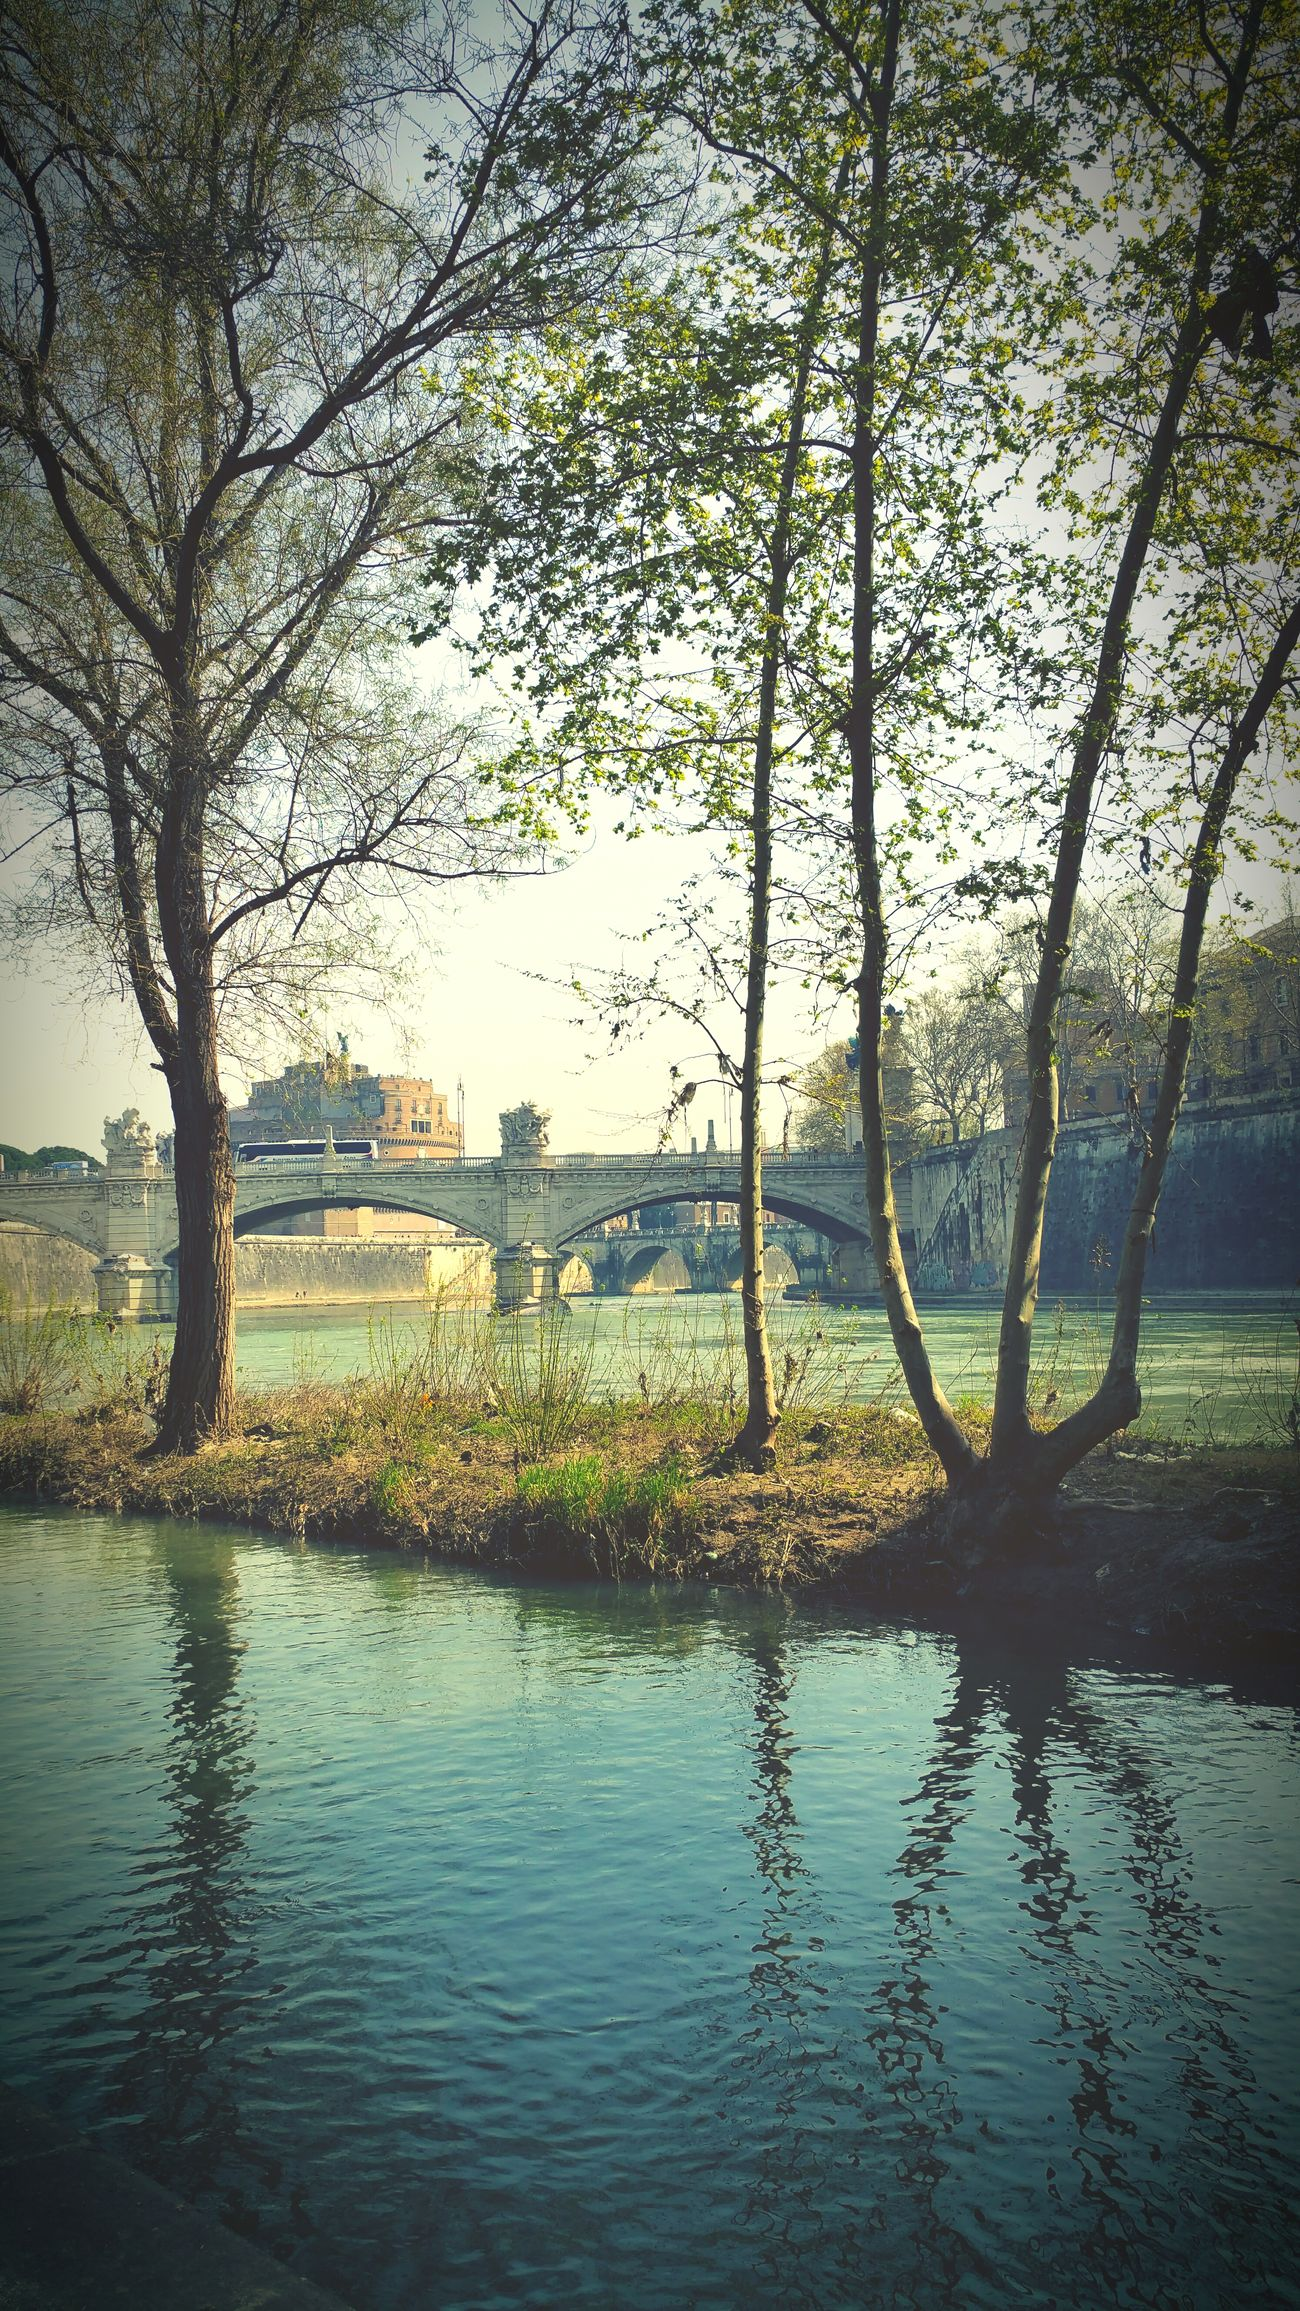 The Tiber Taking Photos Rome, Italy Hello World I Like It Taking Photos